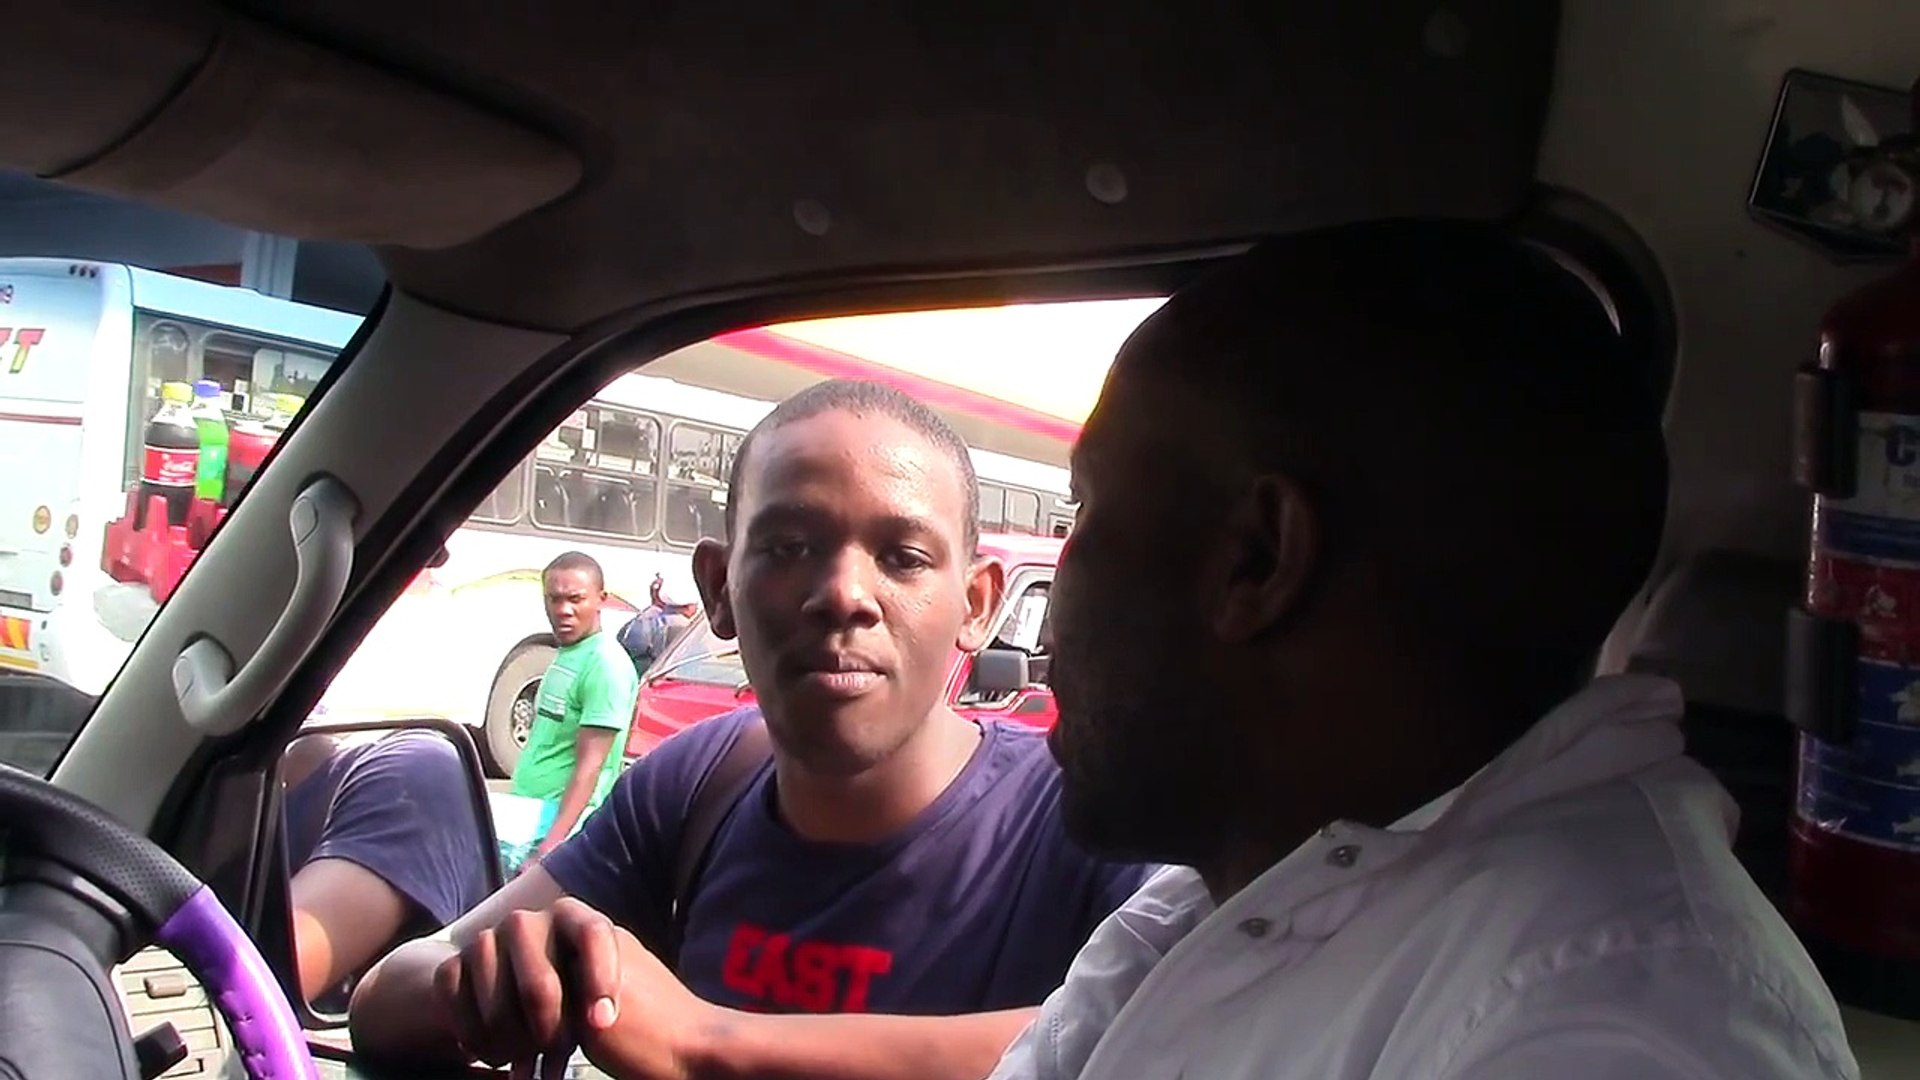 taxi drive explains his daily routine with Taximap